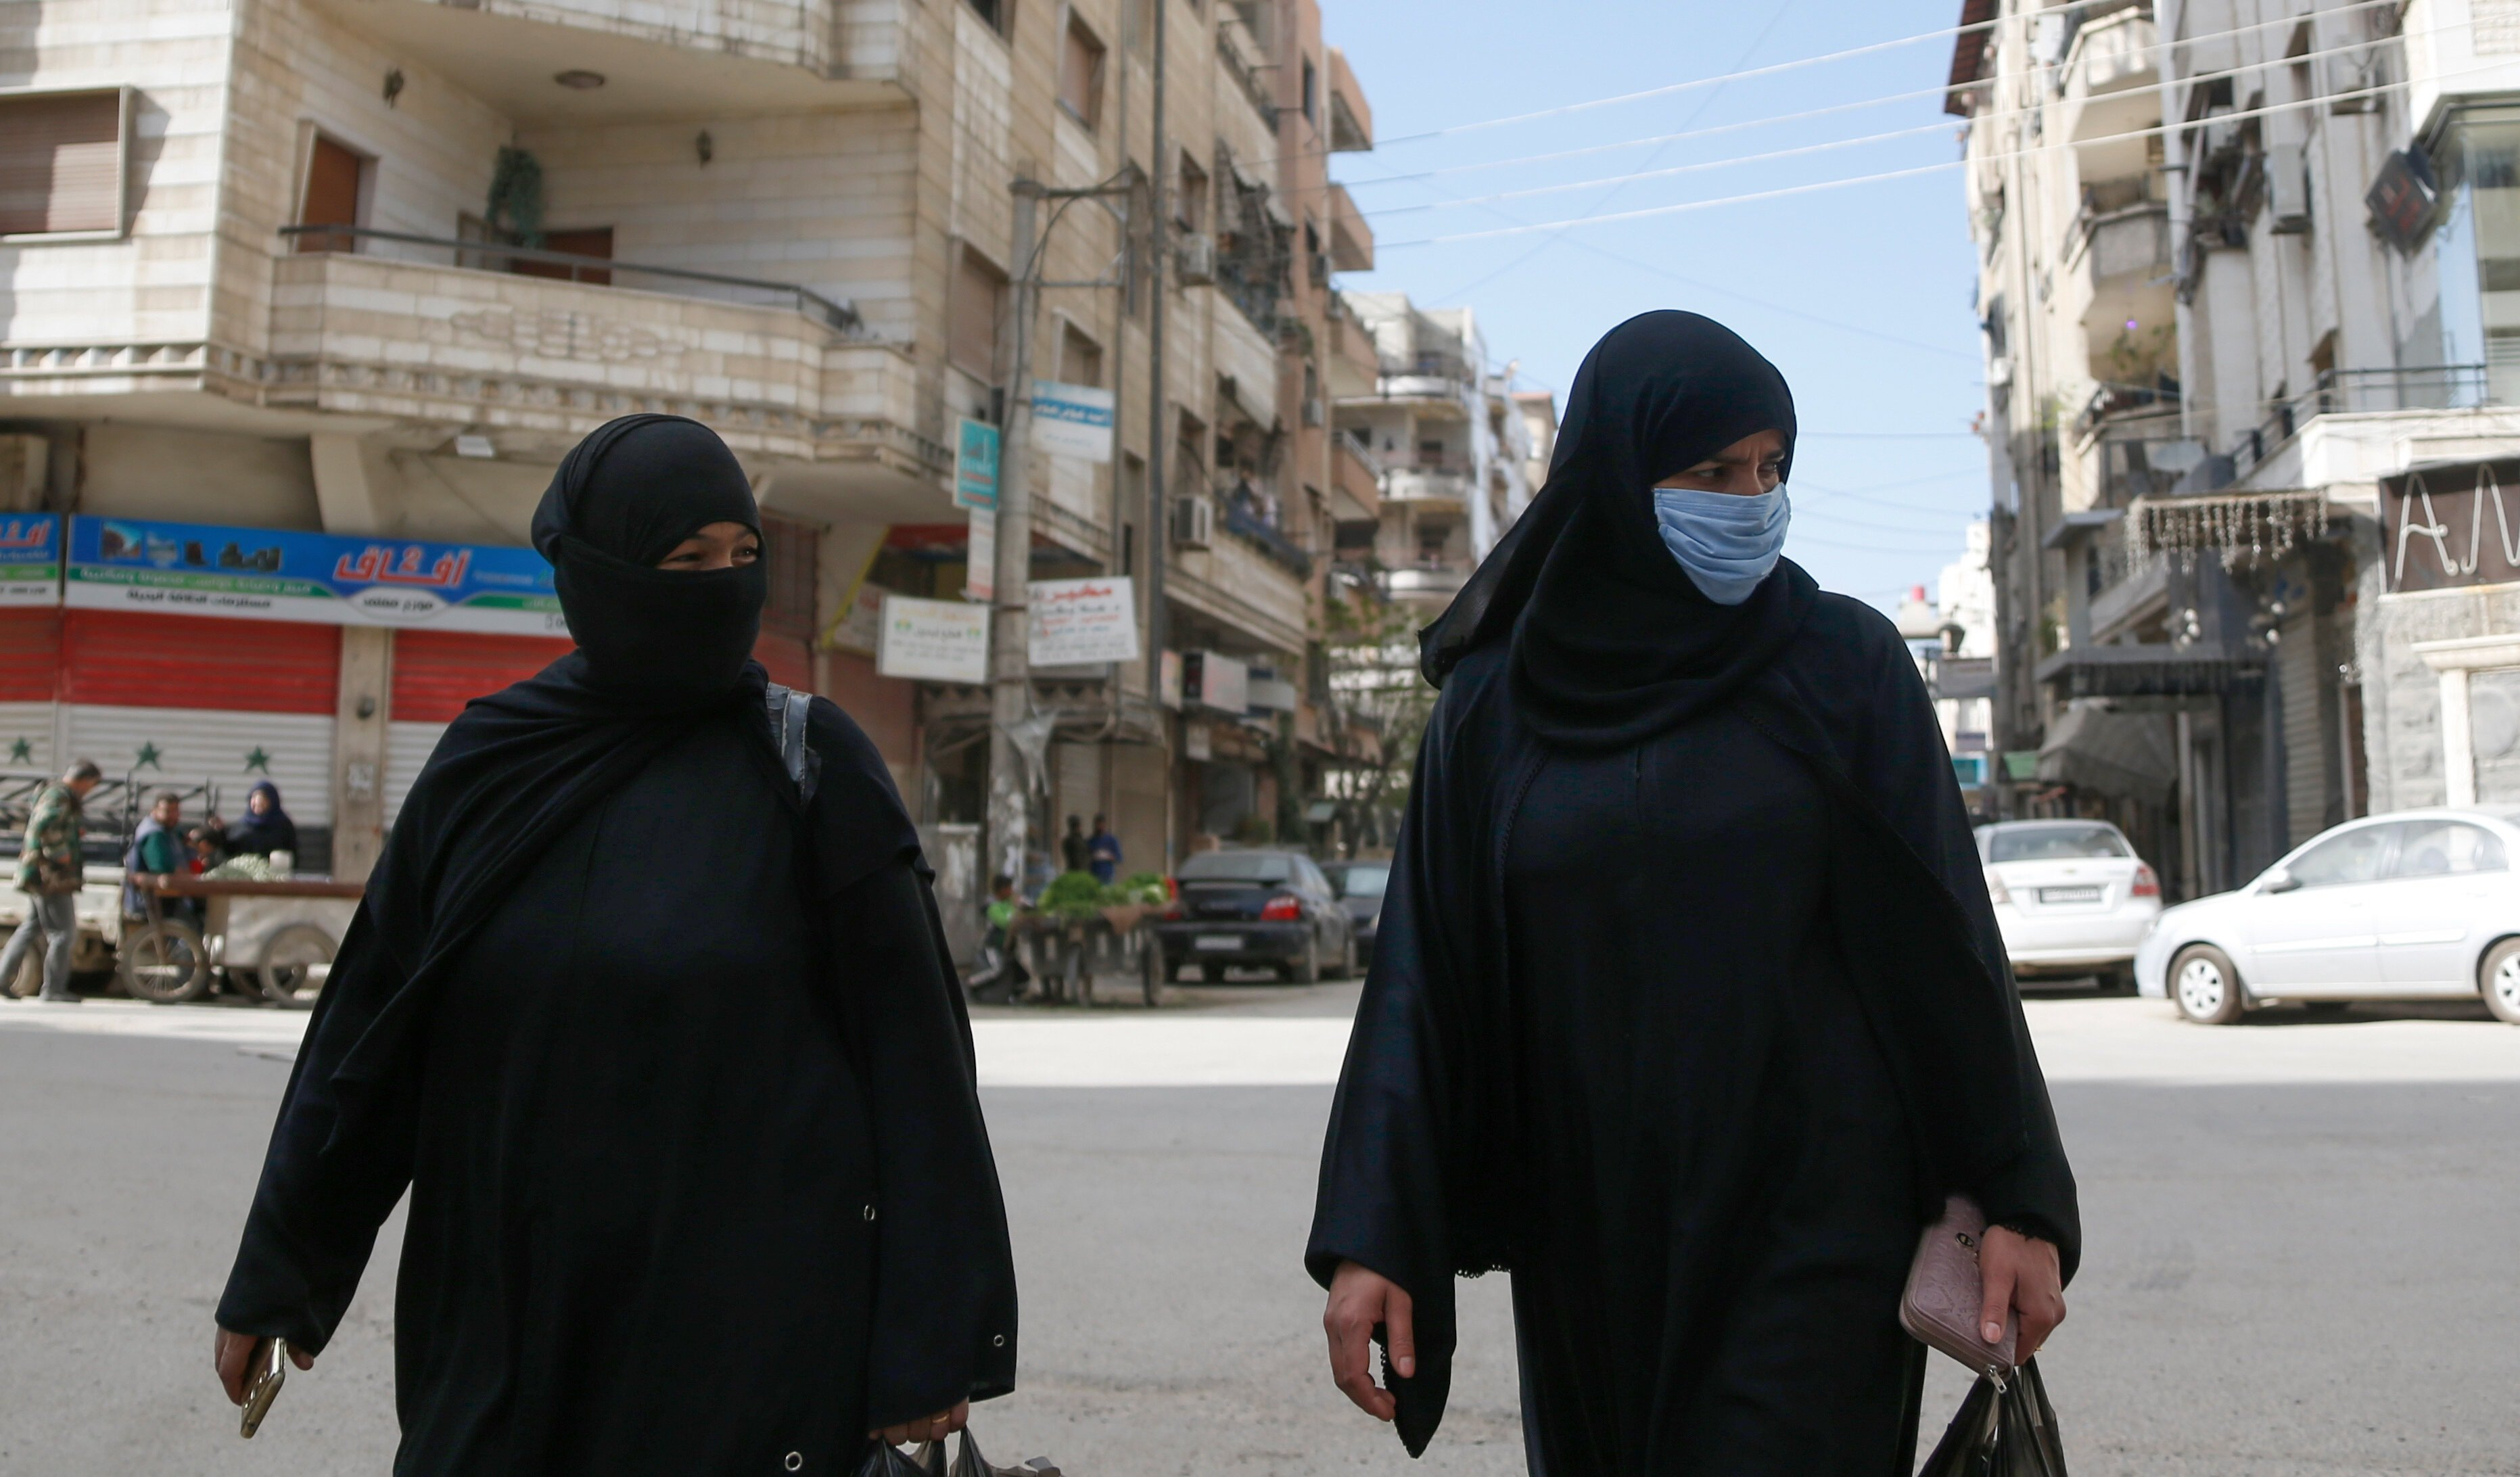 Filipino women recruited to work in UAE trafficked and sold in Syria: Report